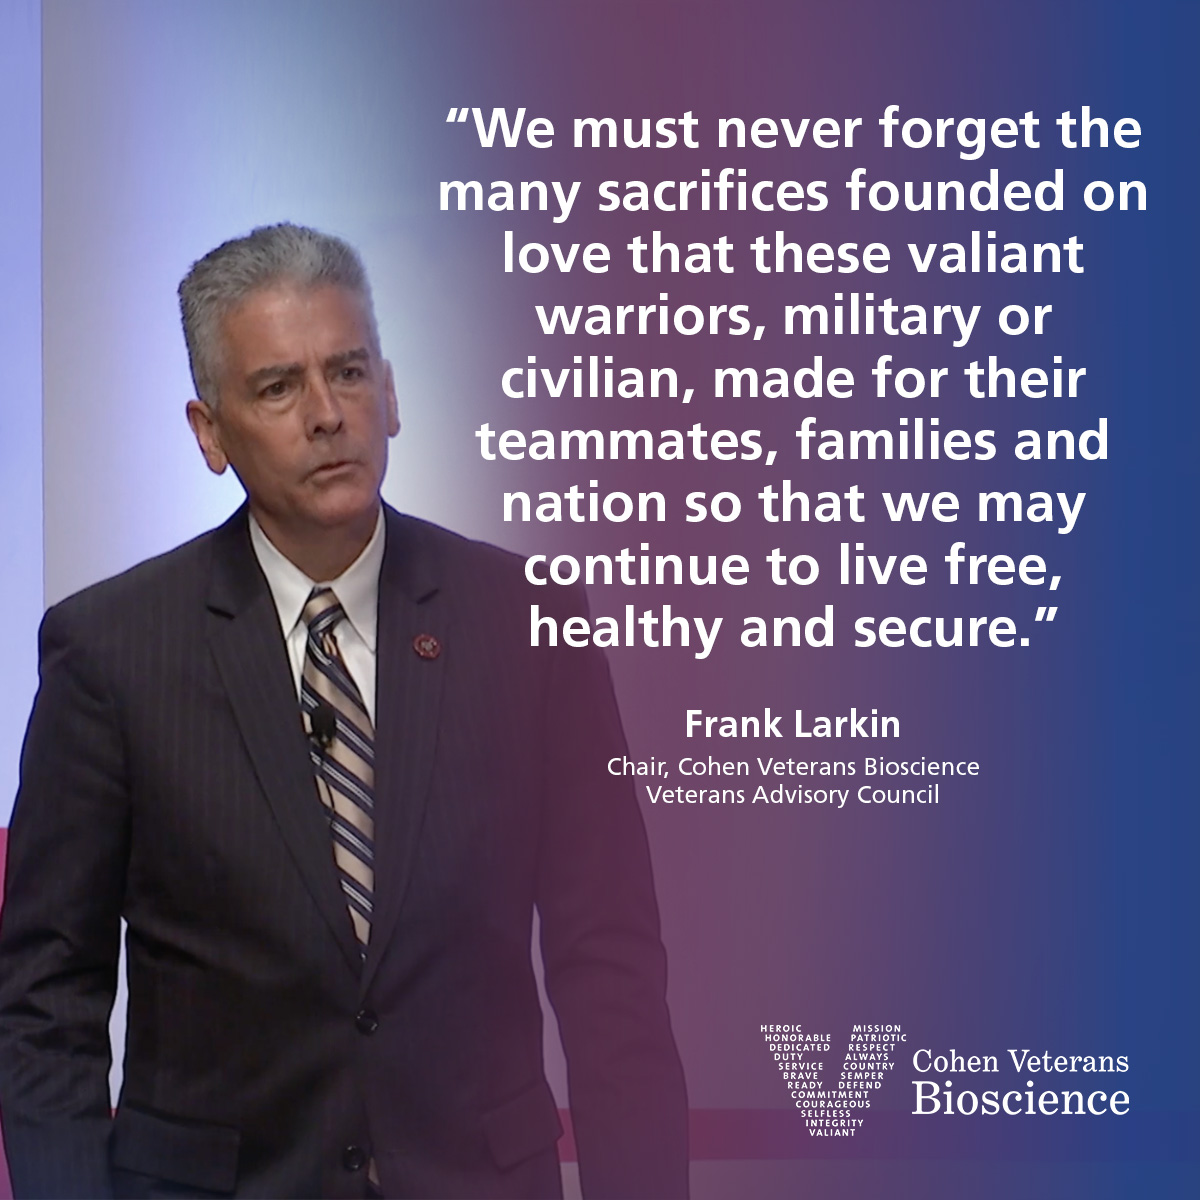 Quote from Frank Larkin